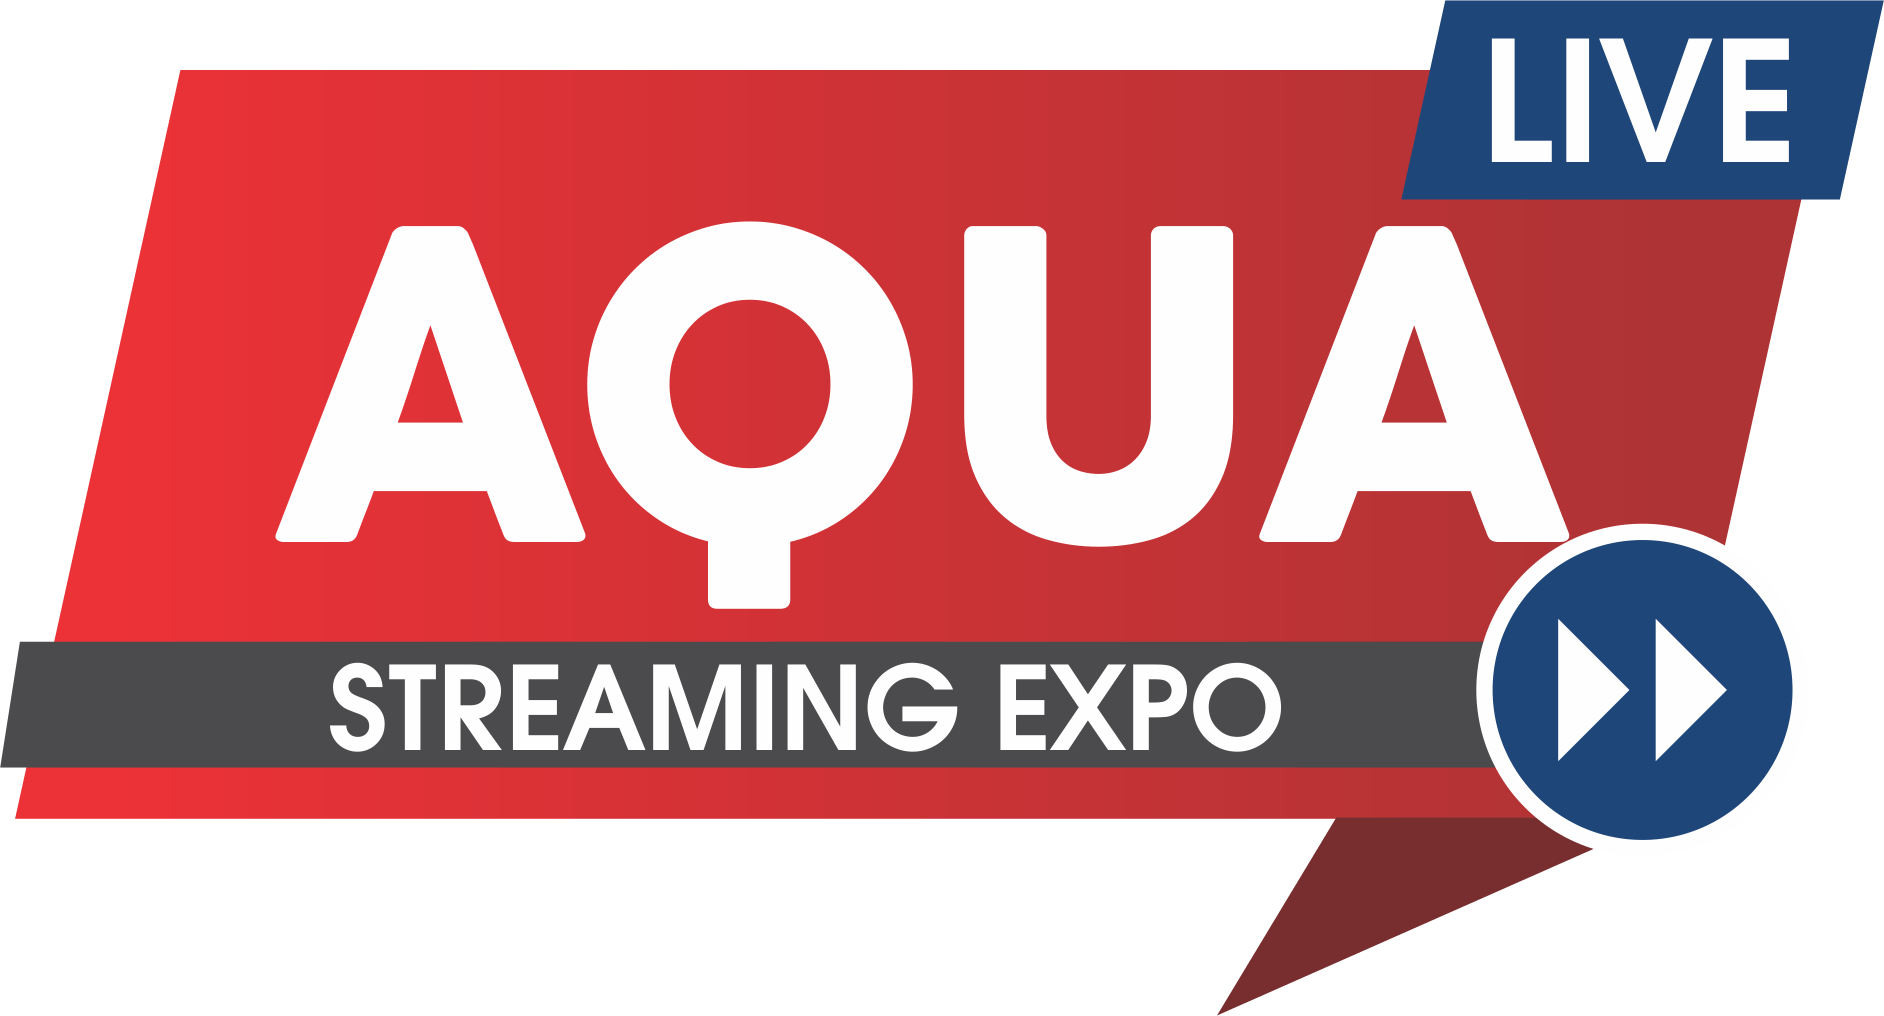 Aqua Live Streaming RhinoTank Expo –Thursday 23 July 2020, at 15:00 CAT